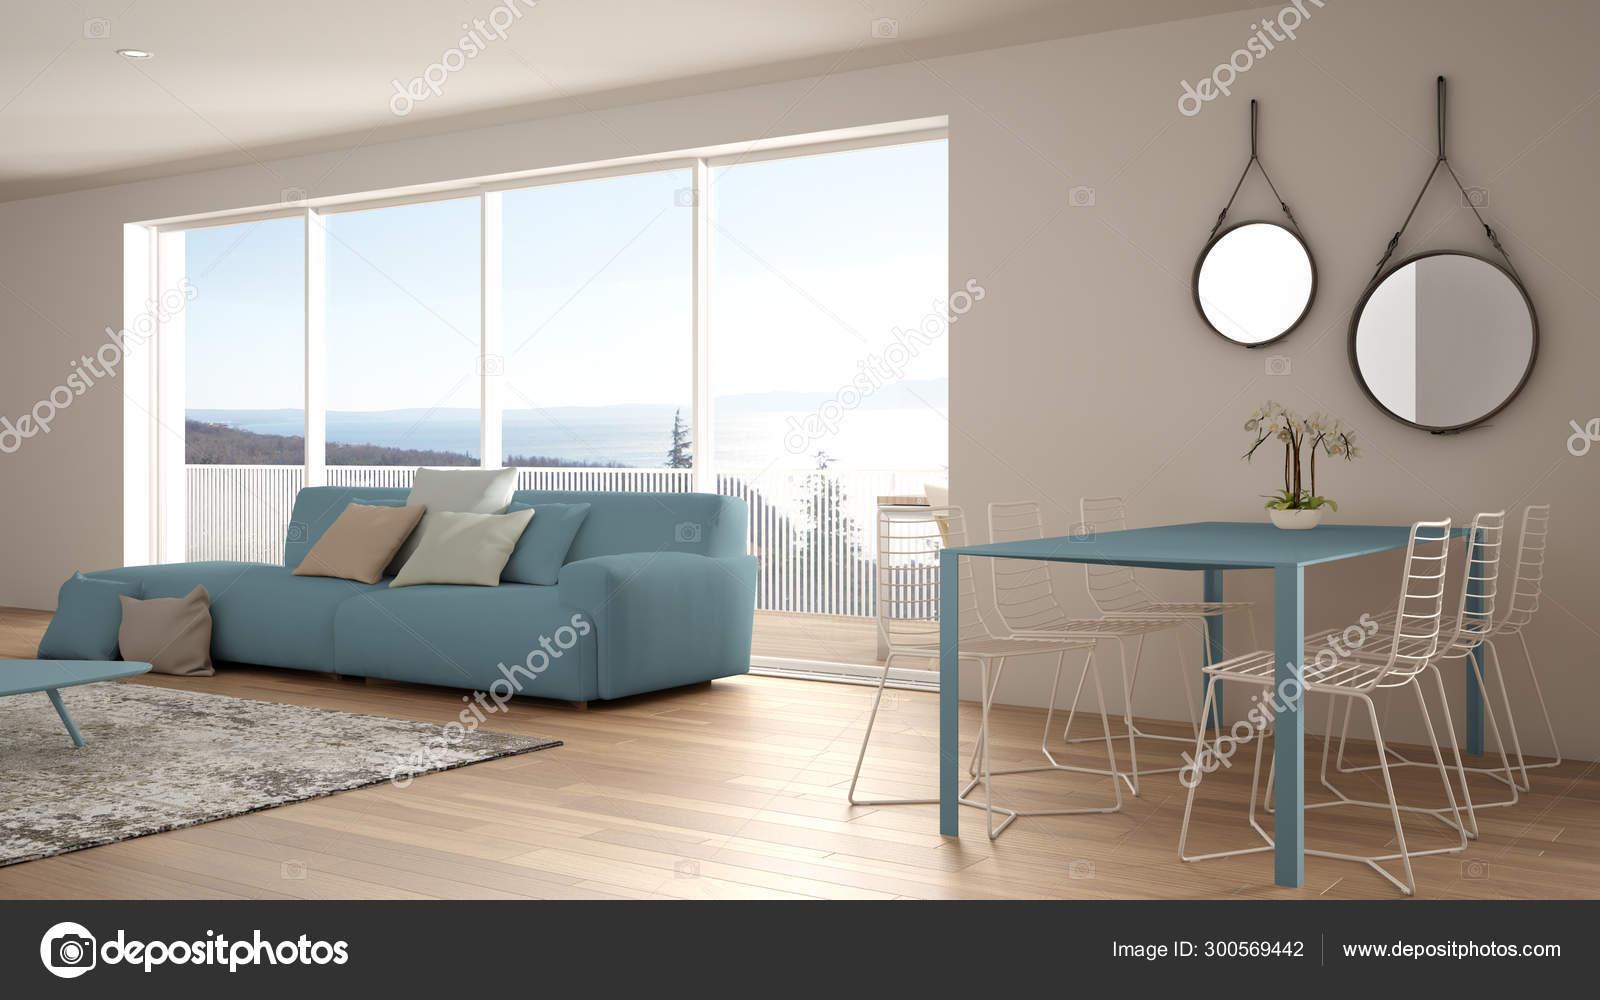 Penthouse Minimalist Kitchen Interior Design Lounge With Sofa And Carpet Dining Table Island With Stools Parquet Modern Contemporary White And Blue Architecture Concept Idea Stock Photo Image By Archiviz 300569442